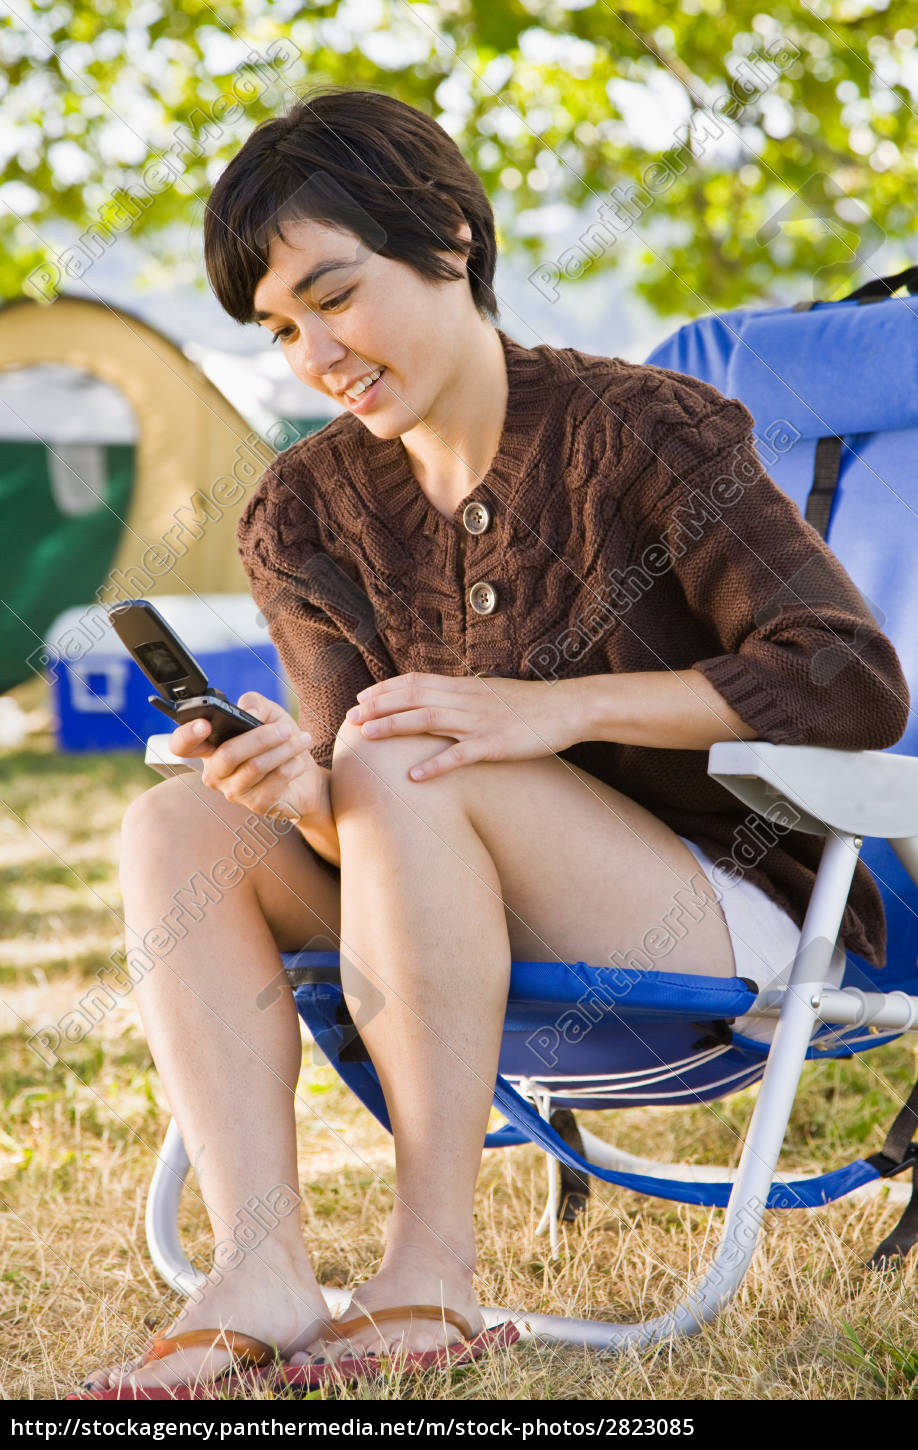 camper, text, messaging, on, cell, phone - 2823085